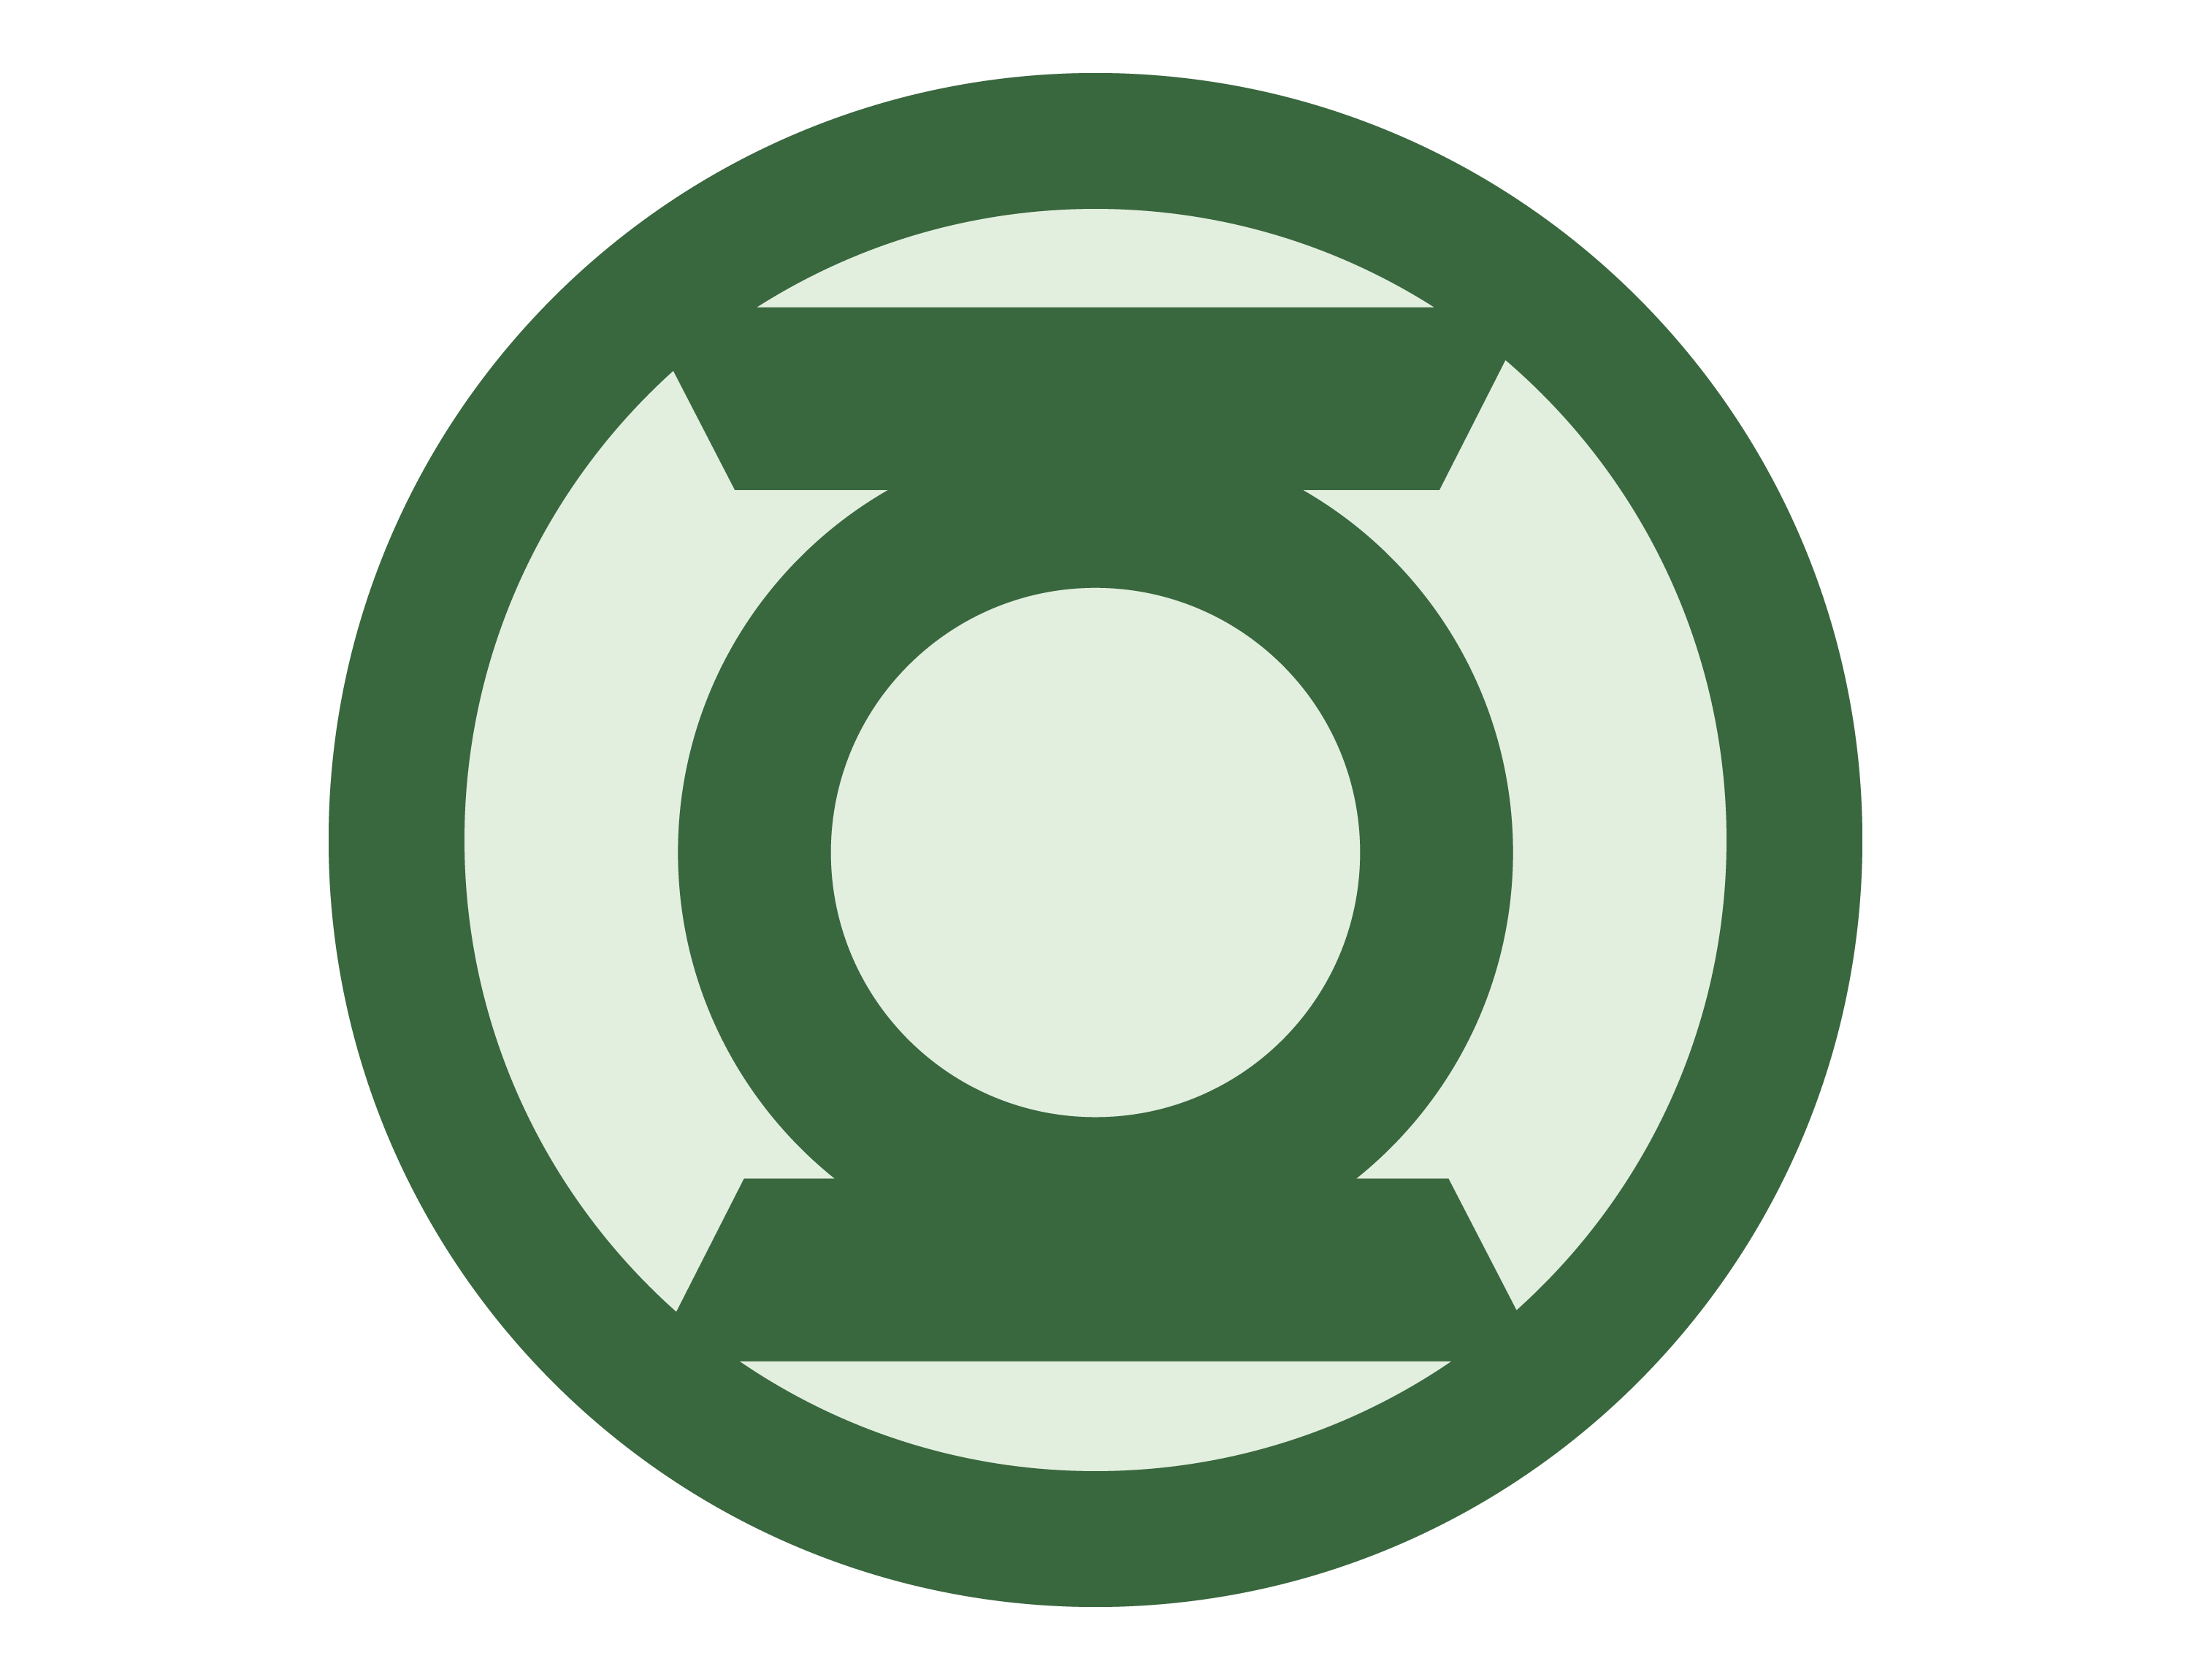 Green Lantern Logo Green Lantern Symbol Meaning History And Evolution